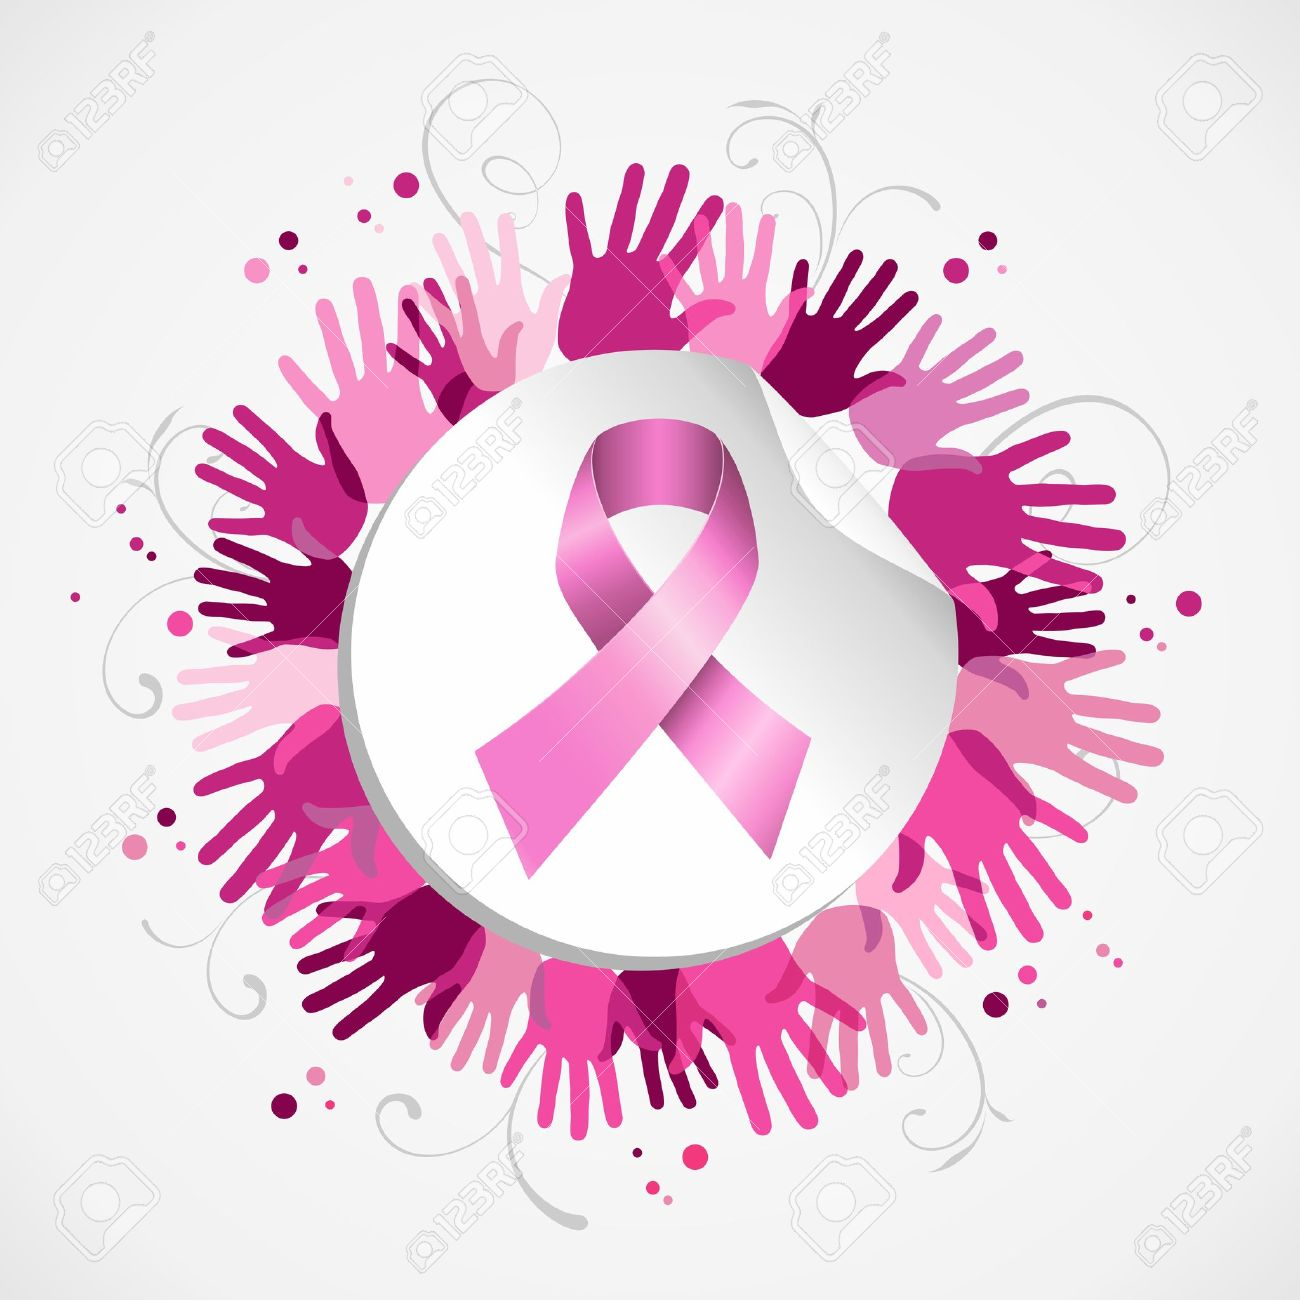 Breast cancer awareness social support hand poster with pink ribbon badge.  EPS10 vector. Stock bed290df3